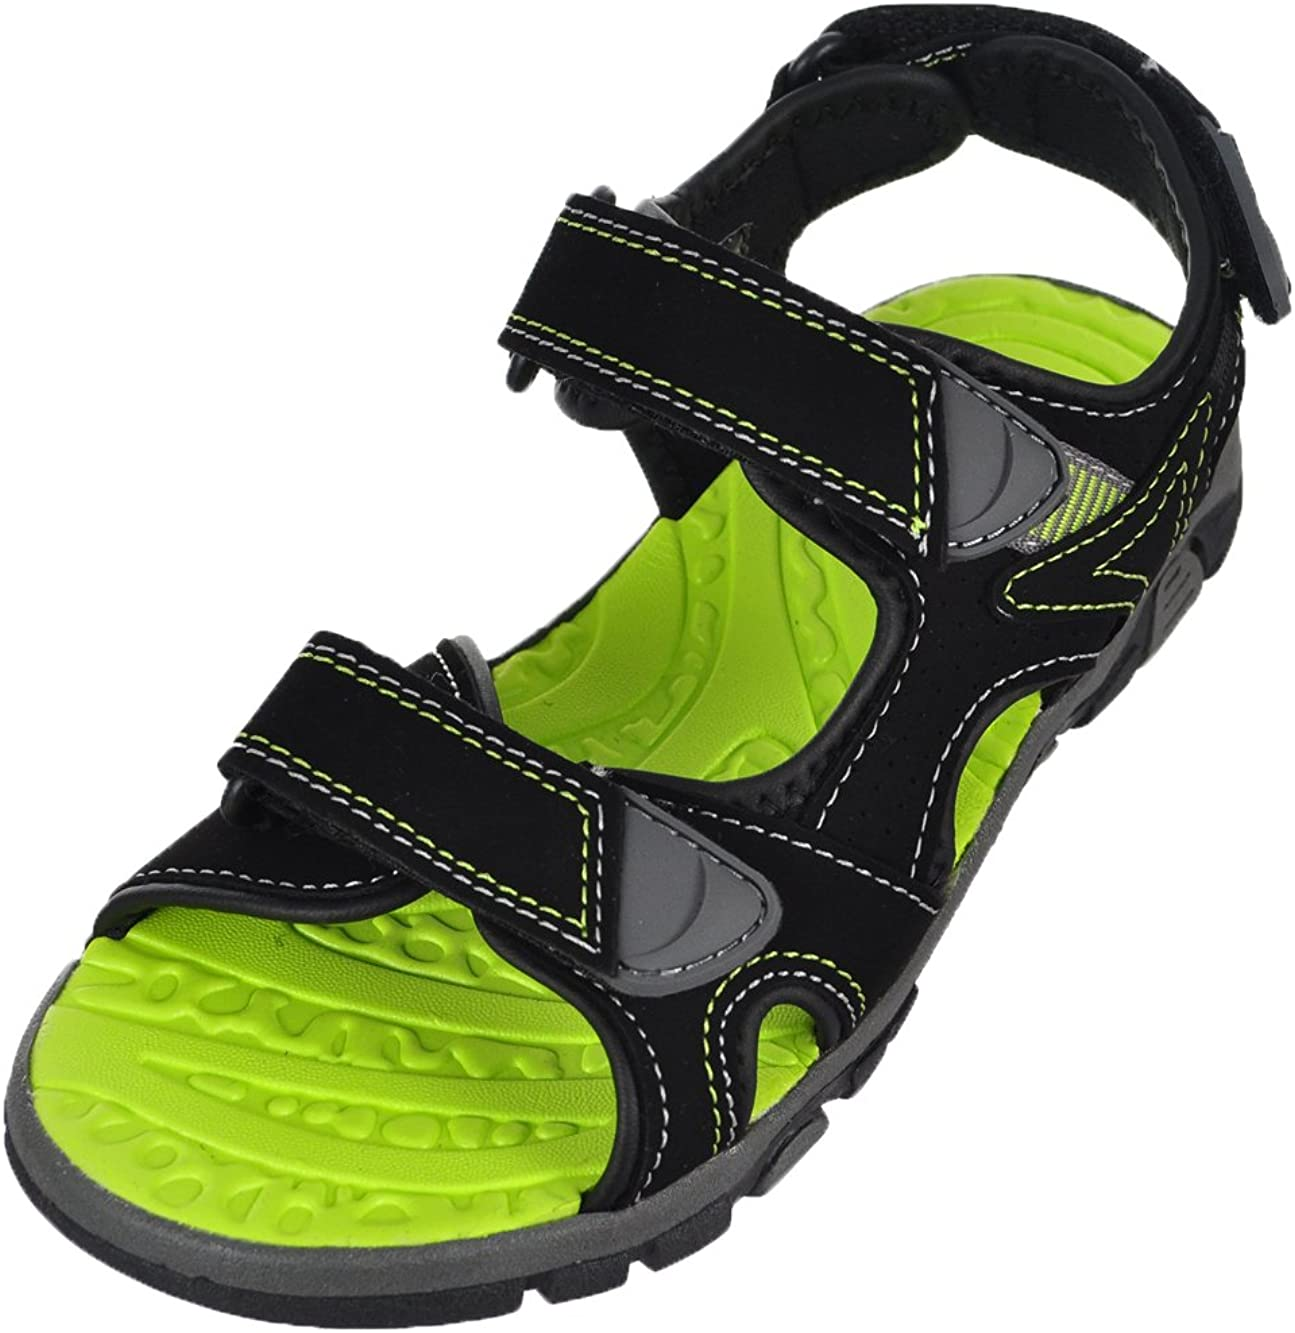 Khombu Kids Boys Black River Sandal w Adjustable Straps and Comfort Insole NWT